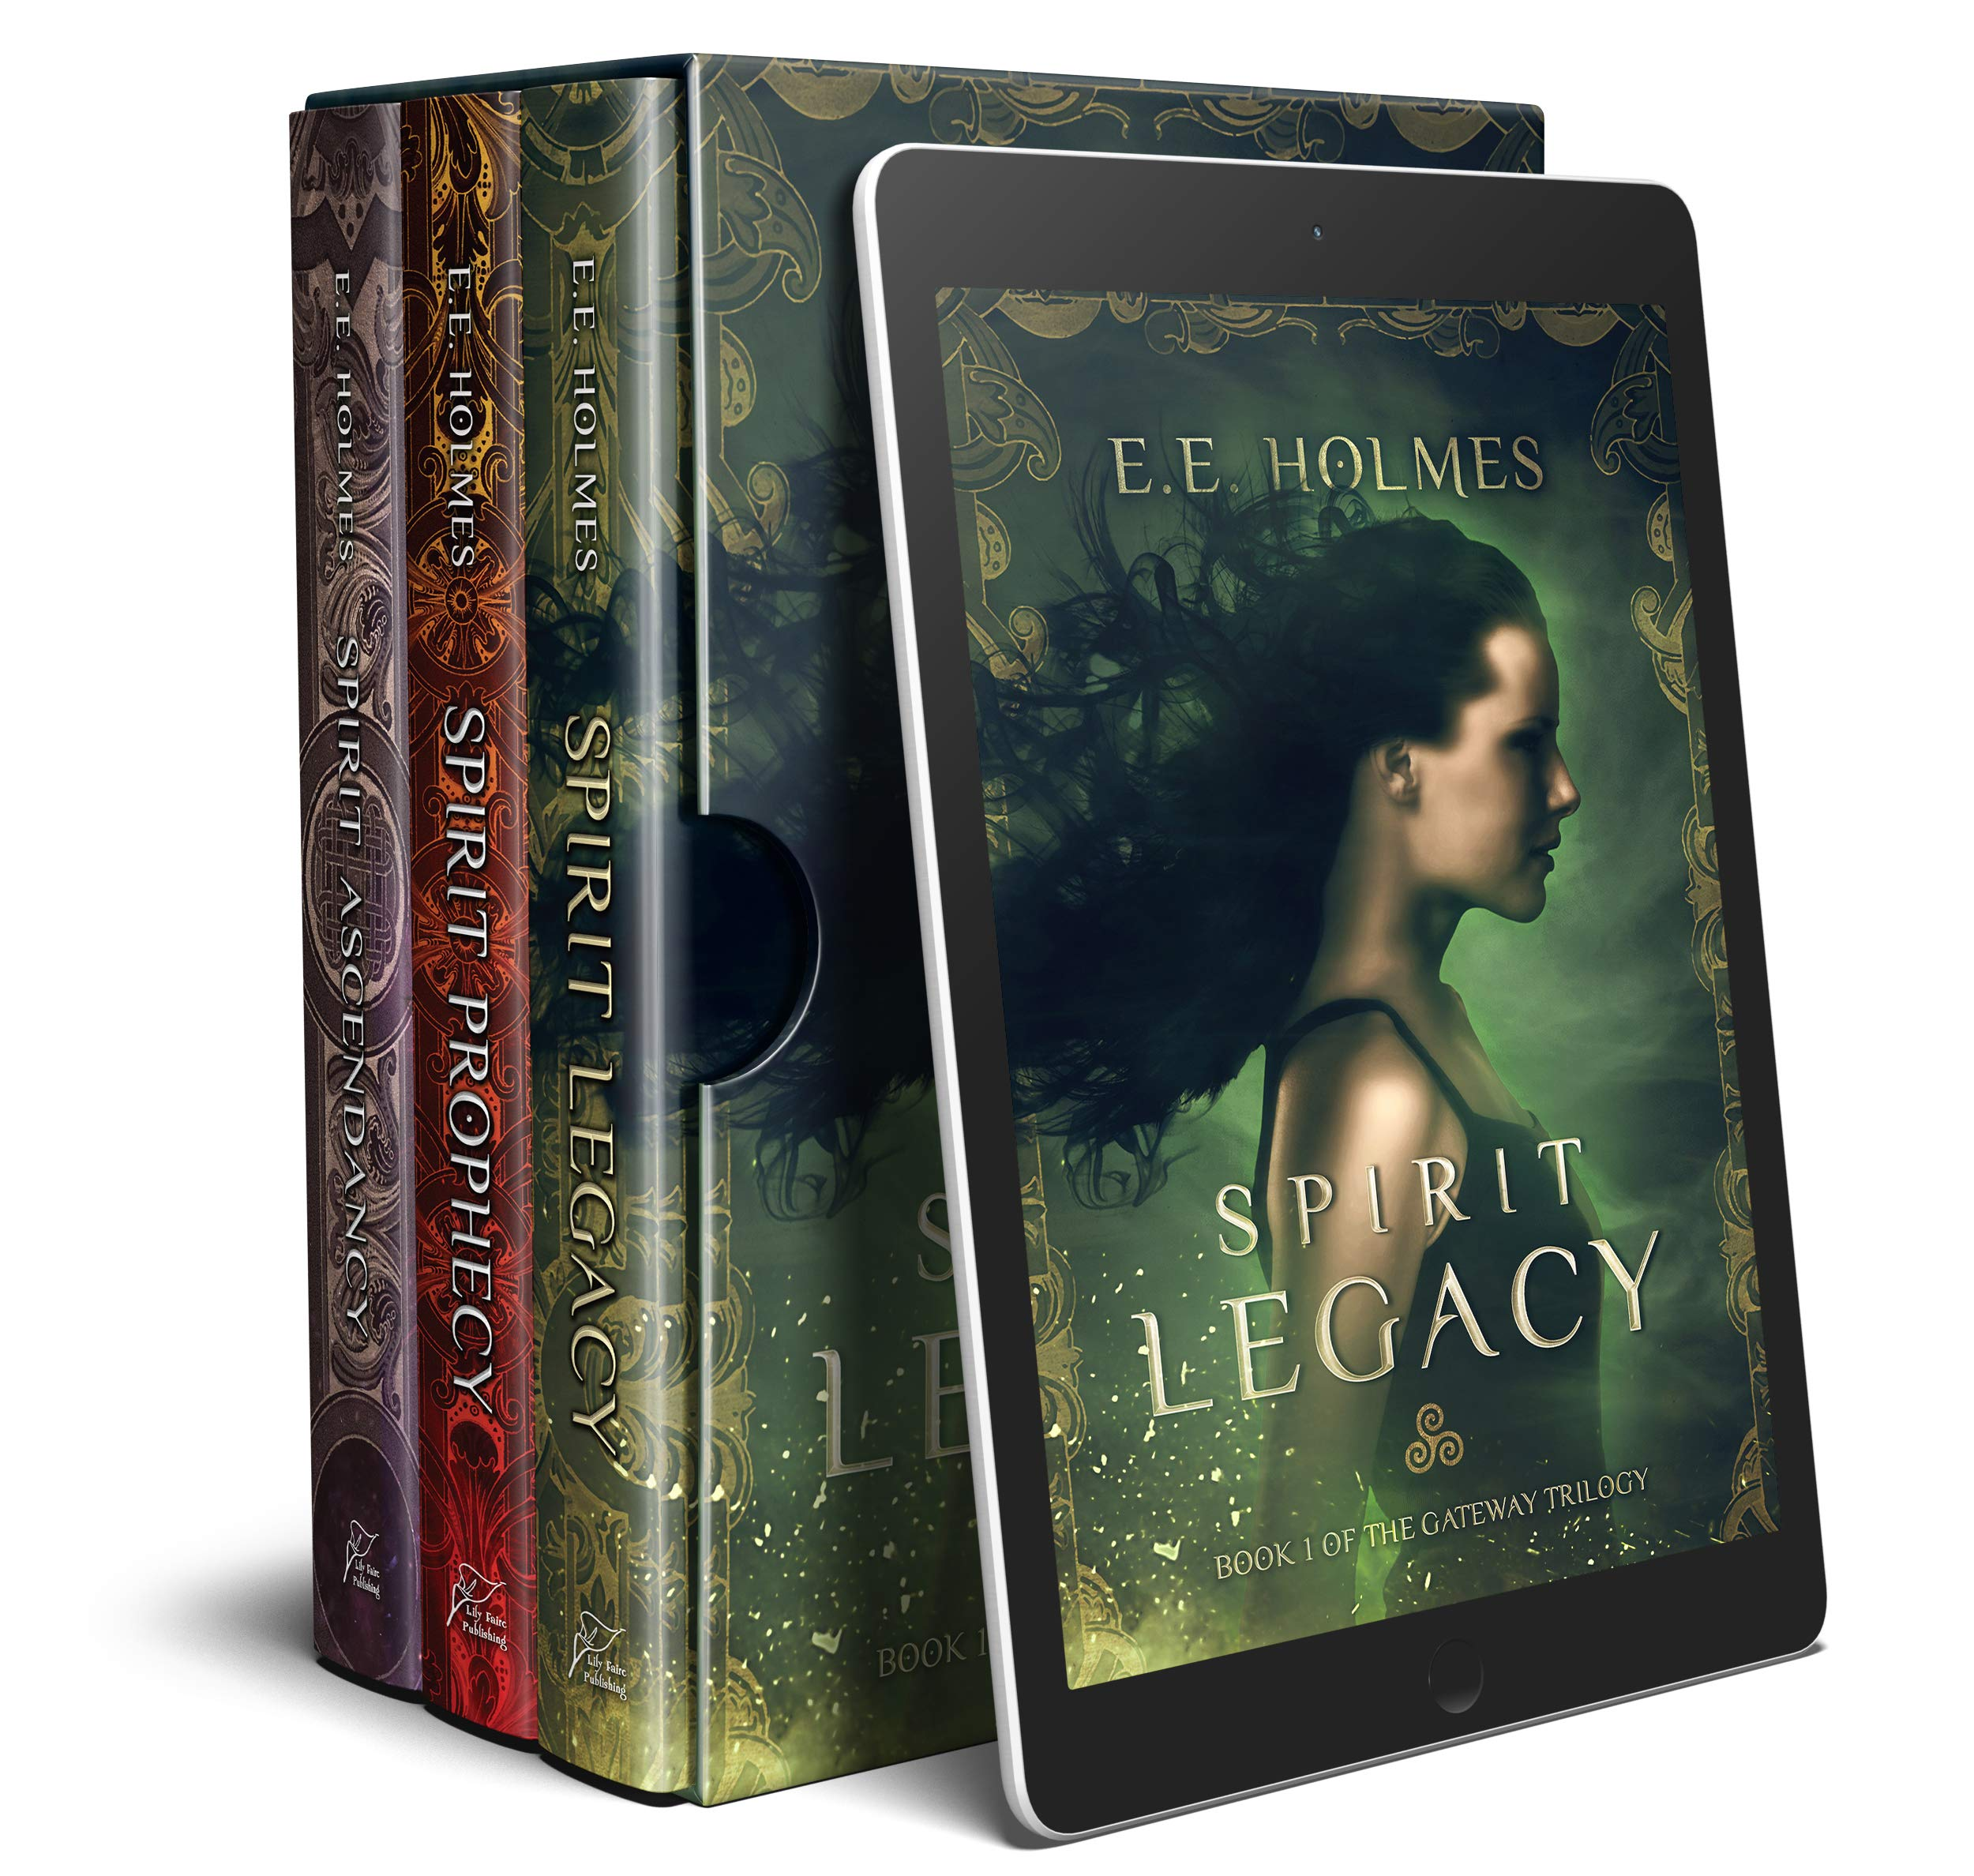 The World of The Gateway (The Gateway Trilogy Books 1-3) (The World of The Gateway Collection Book 1)